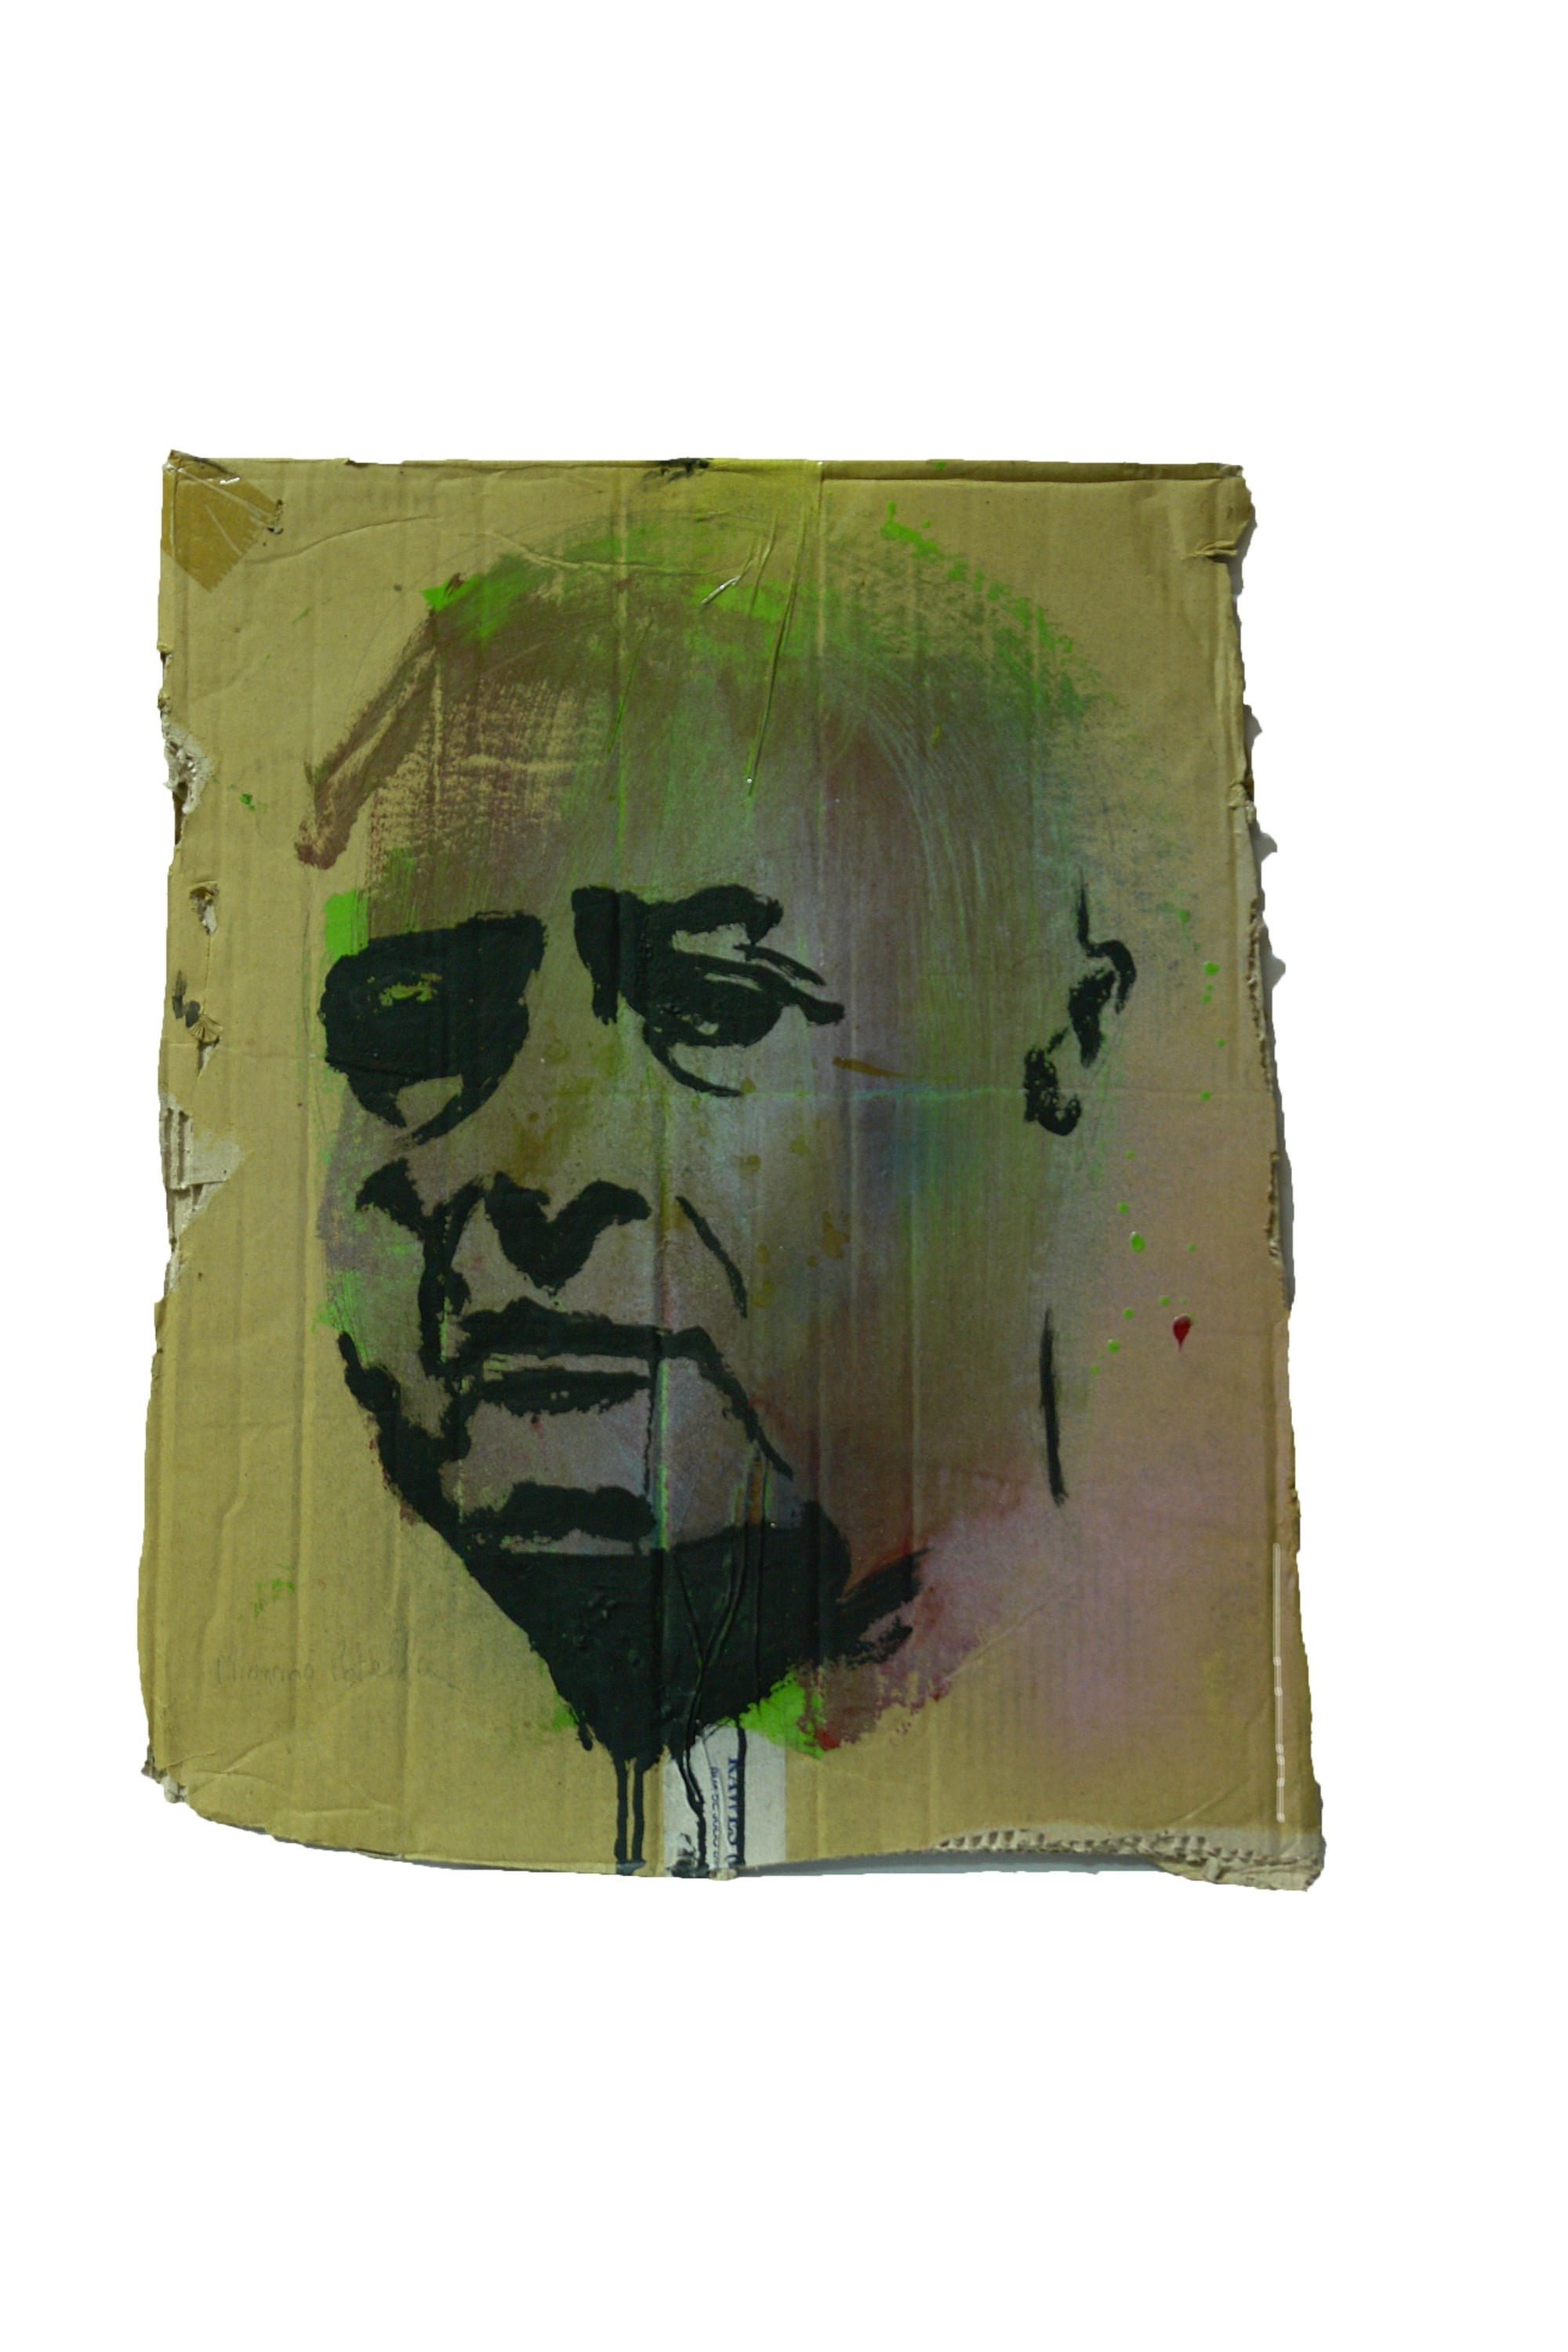 Mimmo Rotella, original Portrait Mixed Technique Painting by Alexandre Rola